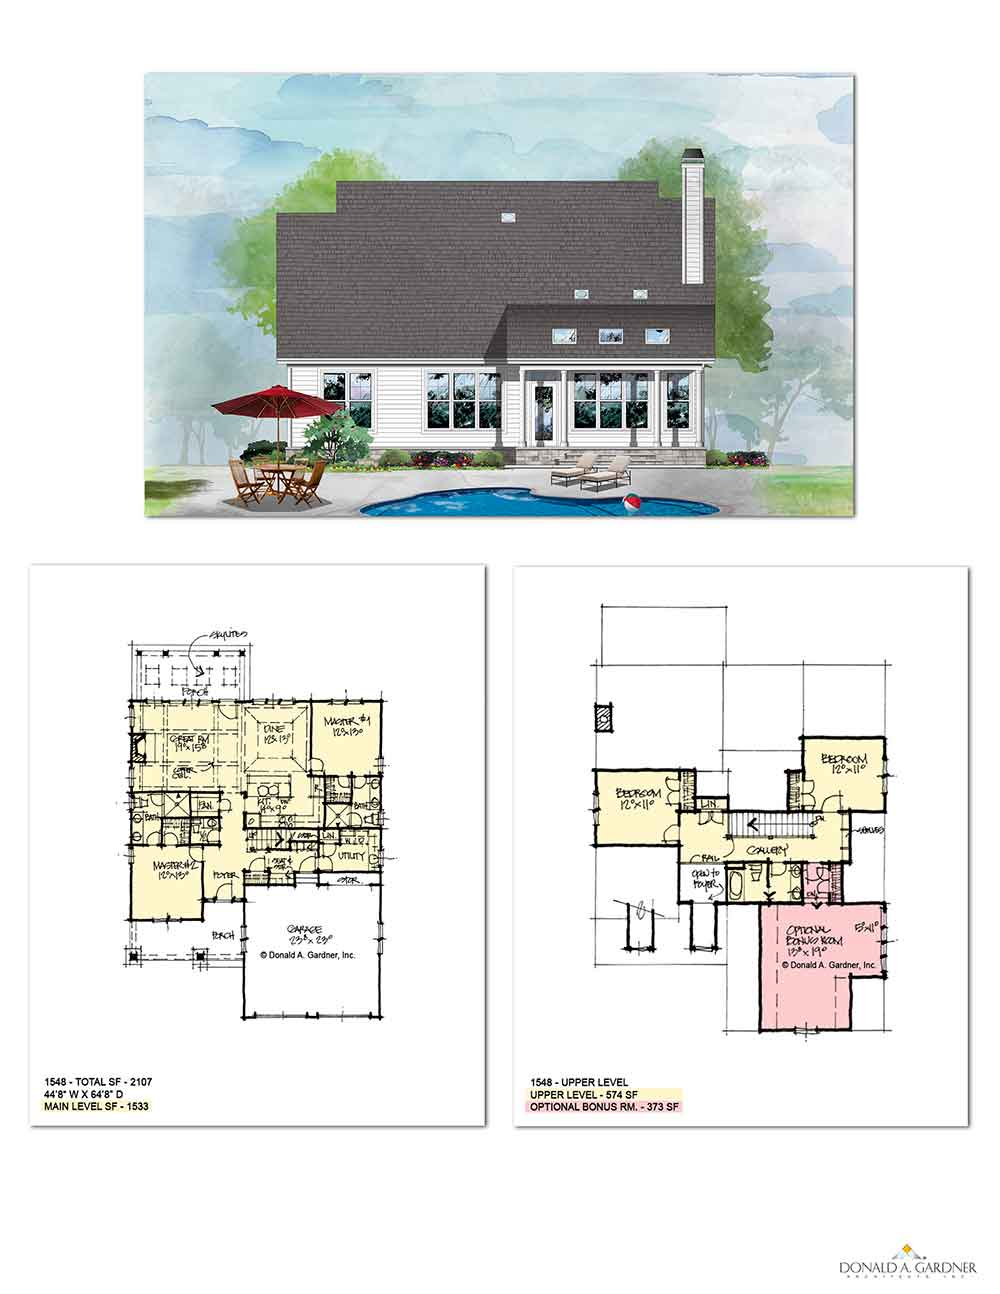 Home Plan 1548 Floor Plan - The Dahlia